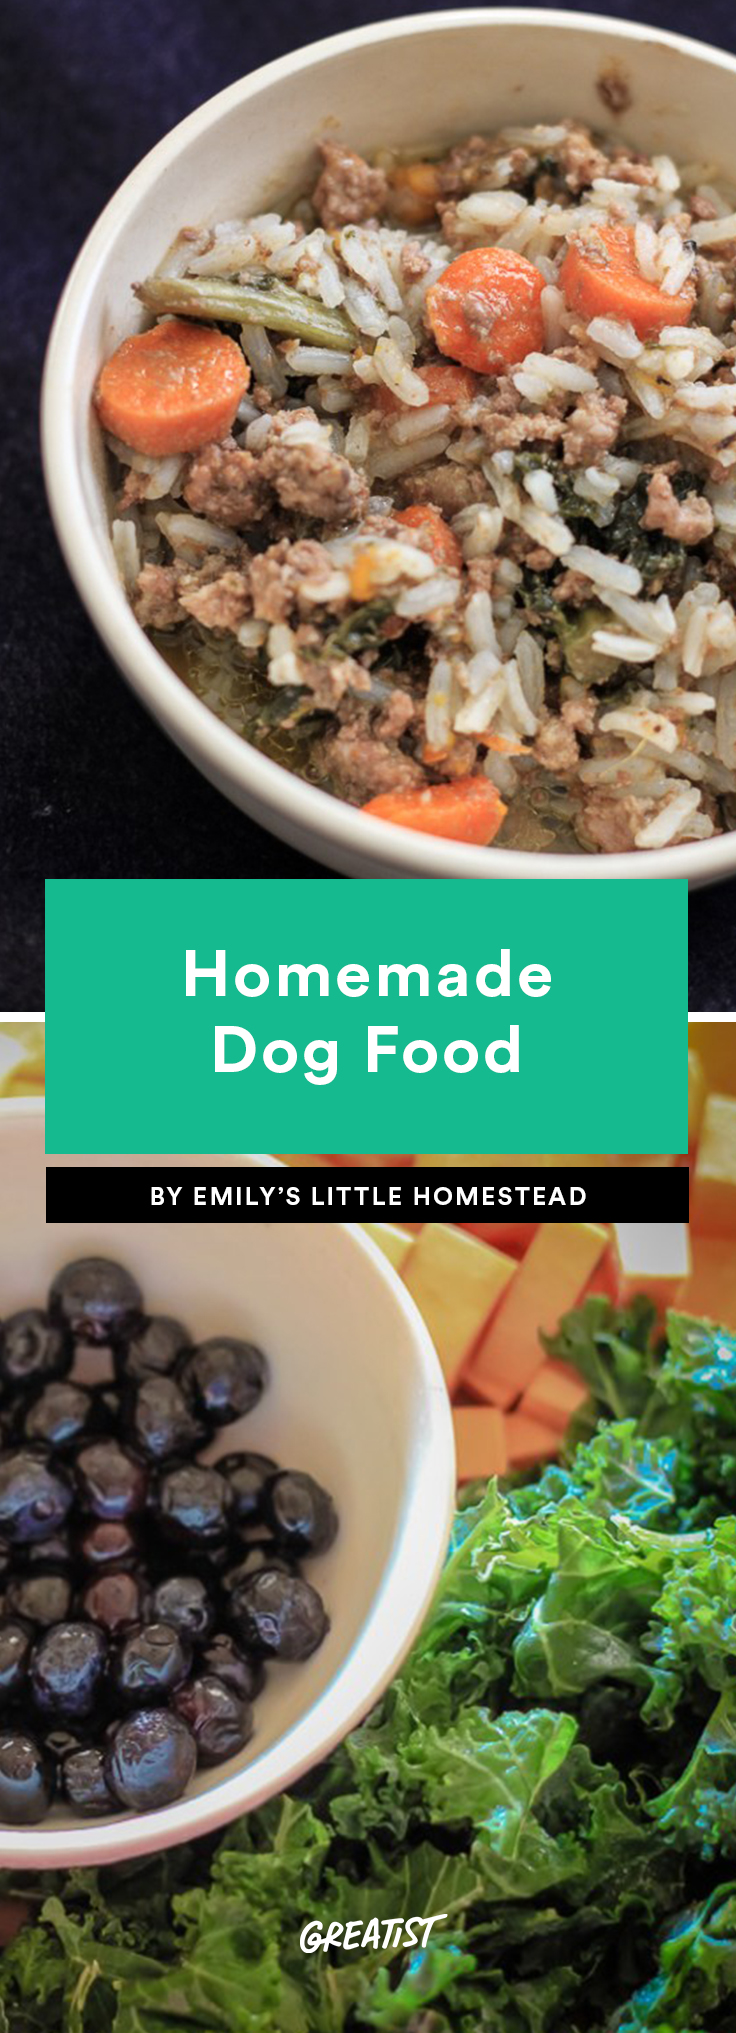 7 Homemade Dog Food Recipes We Won't Tell Anyone You Ate Some Of | Greatist